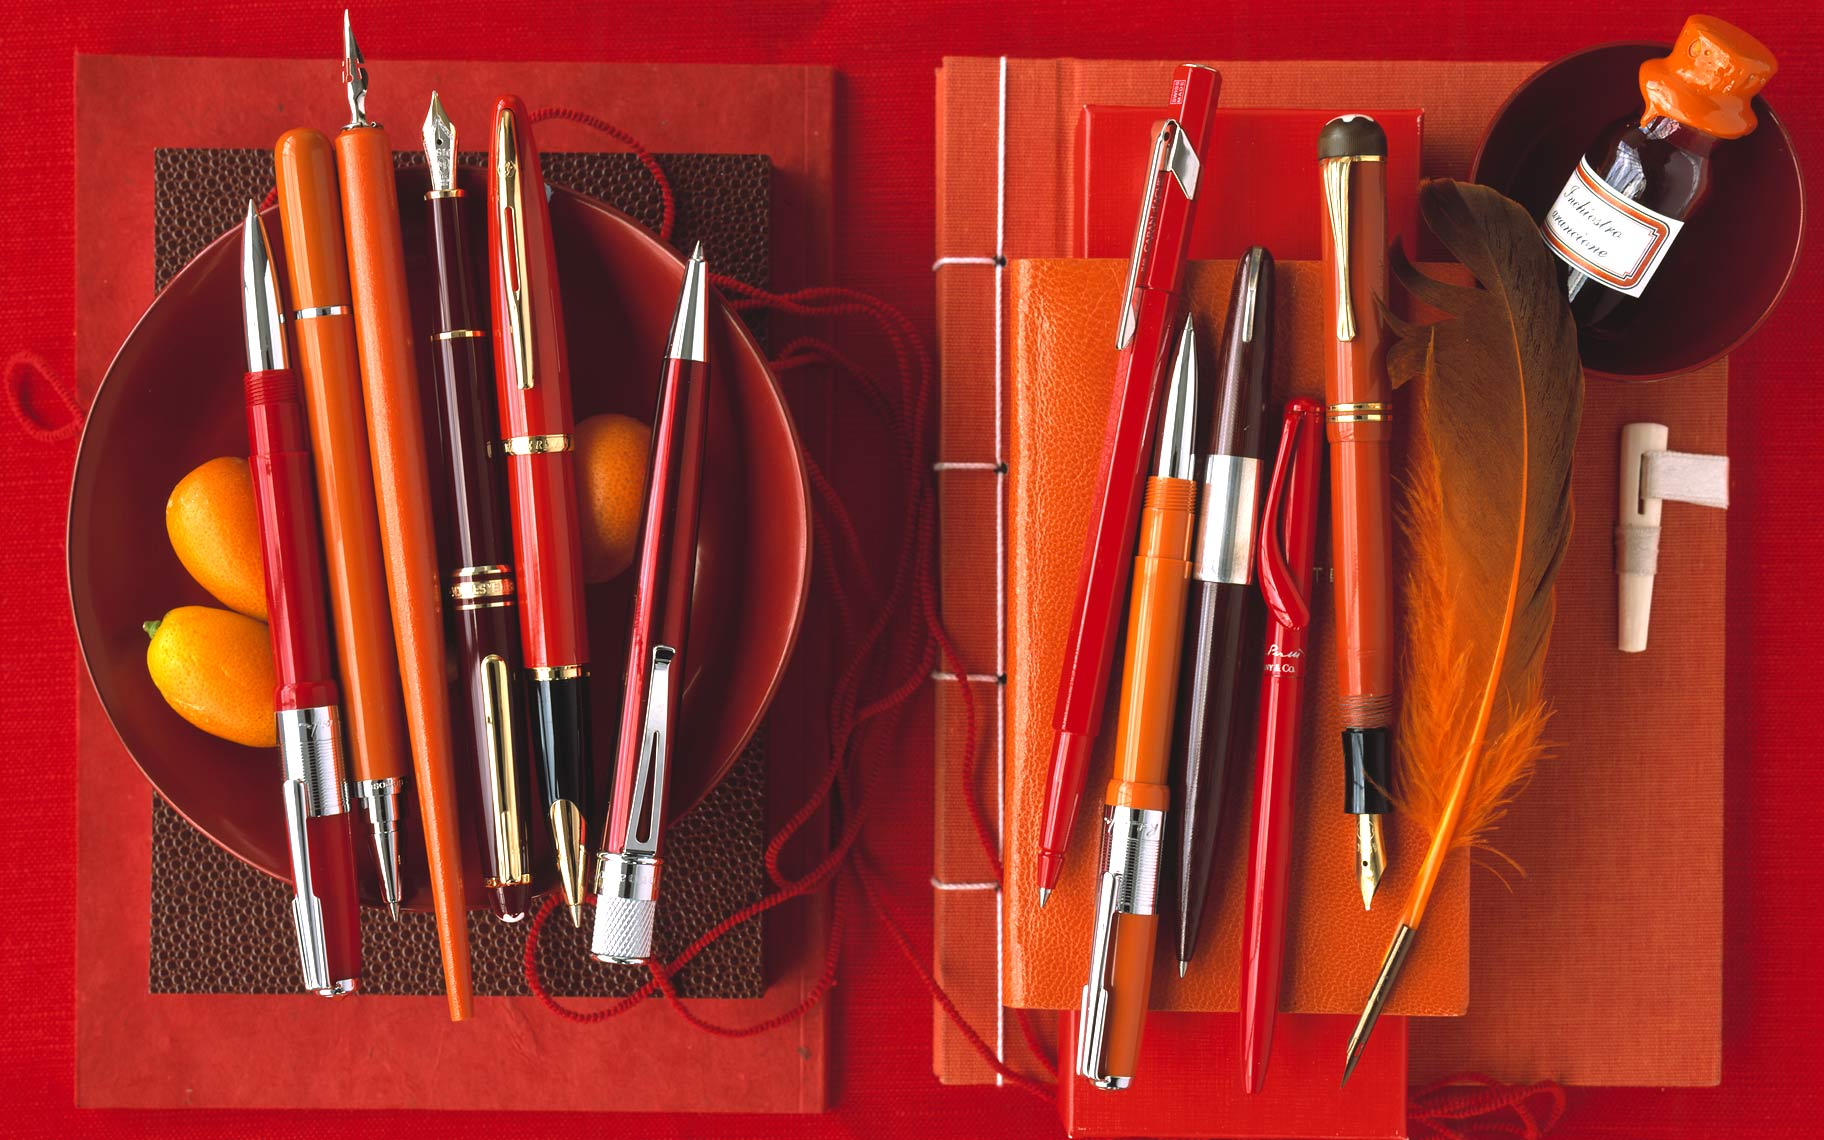 61_Red-Pens-DoubleFINAL_crop